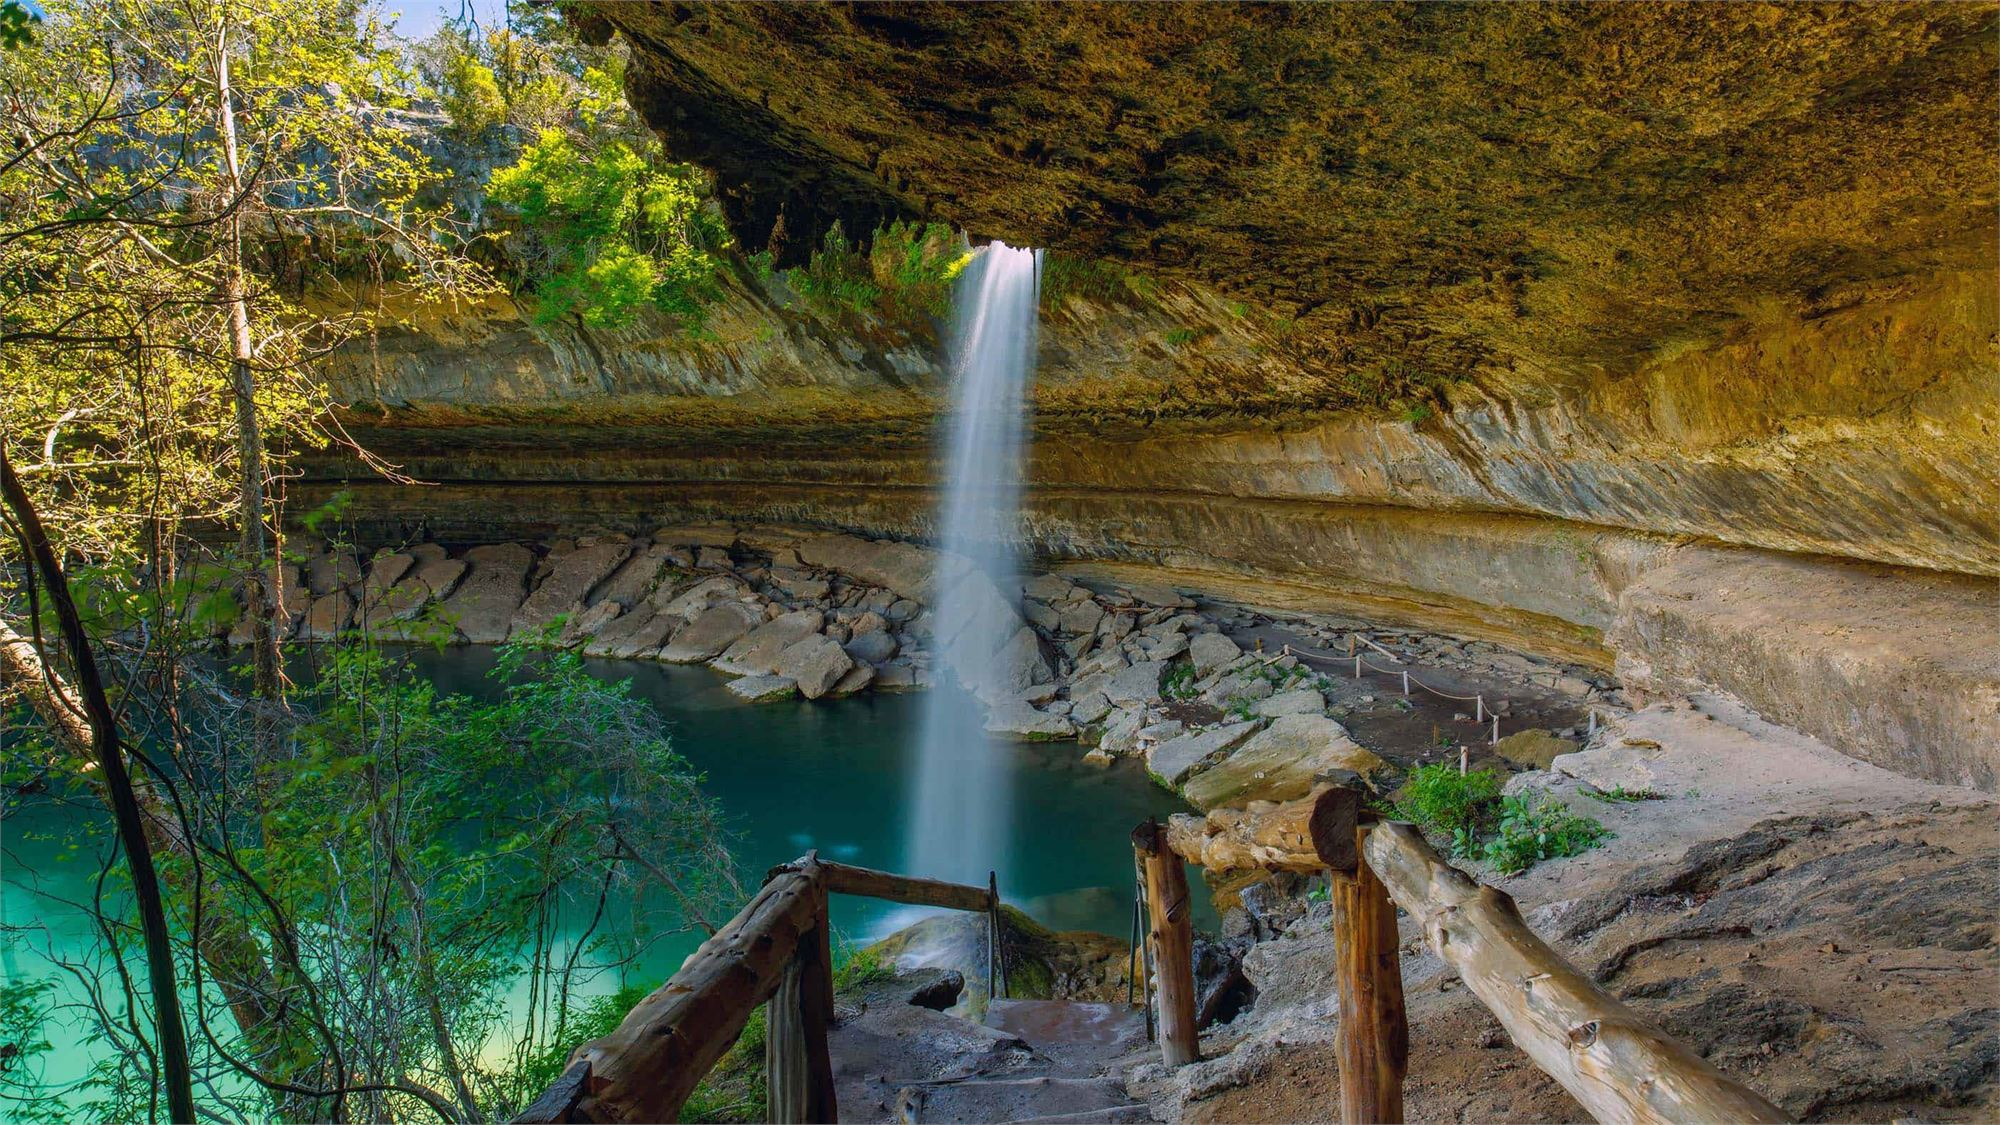 A waterfall falling into a big natural pool